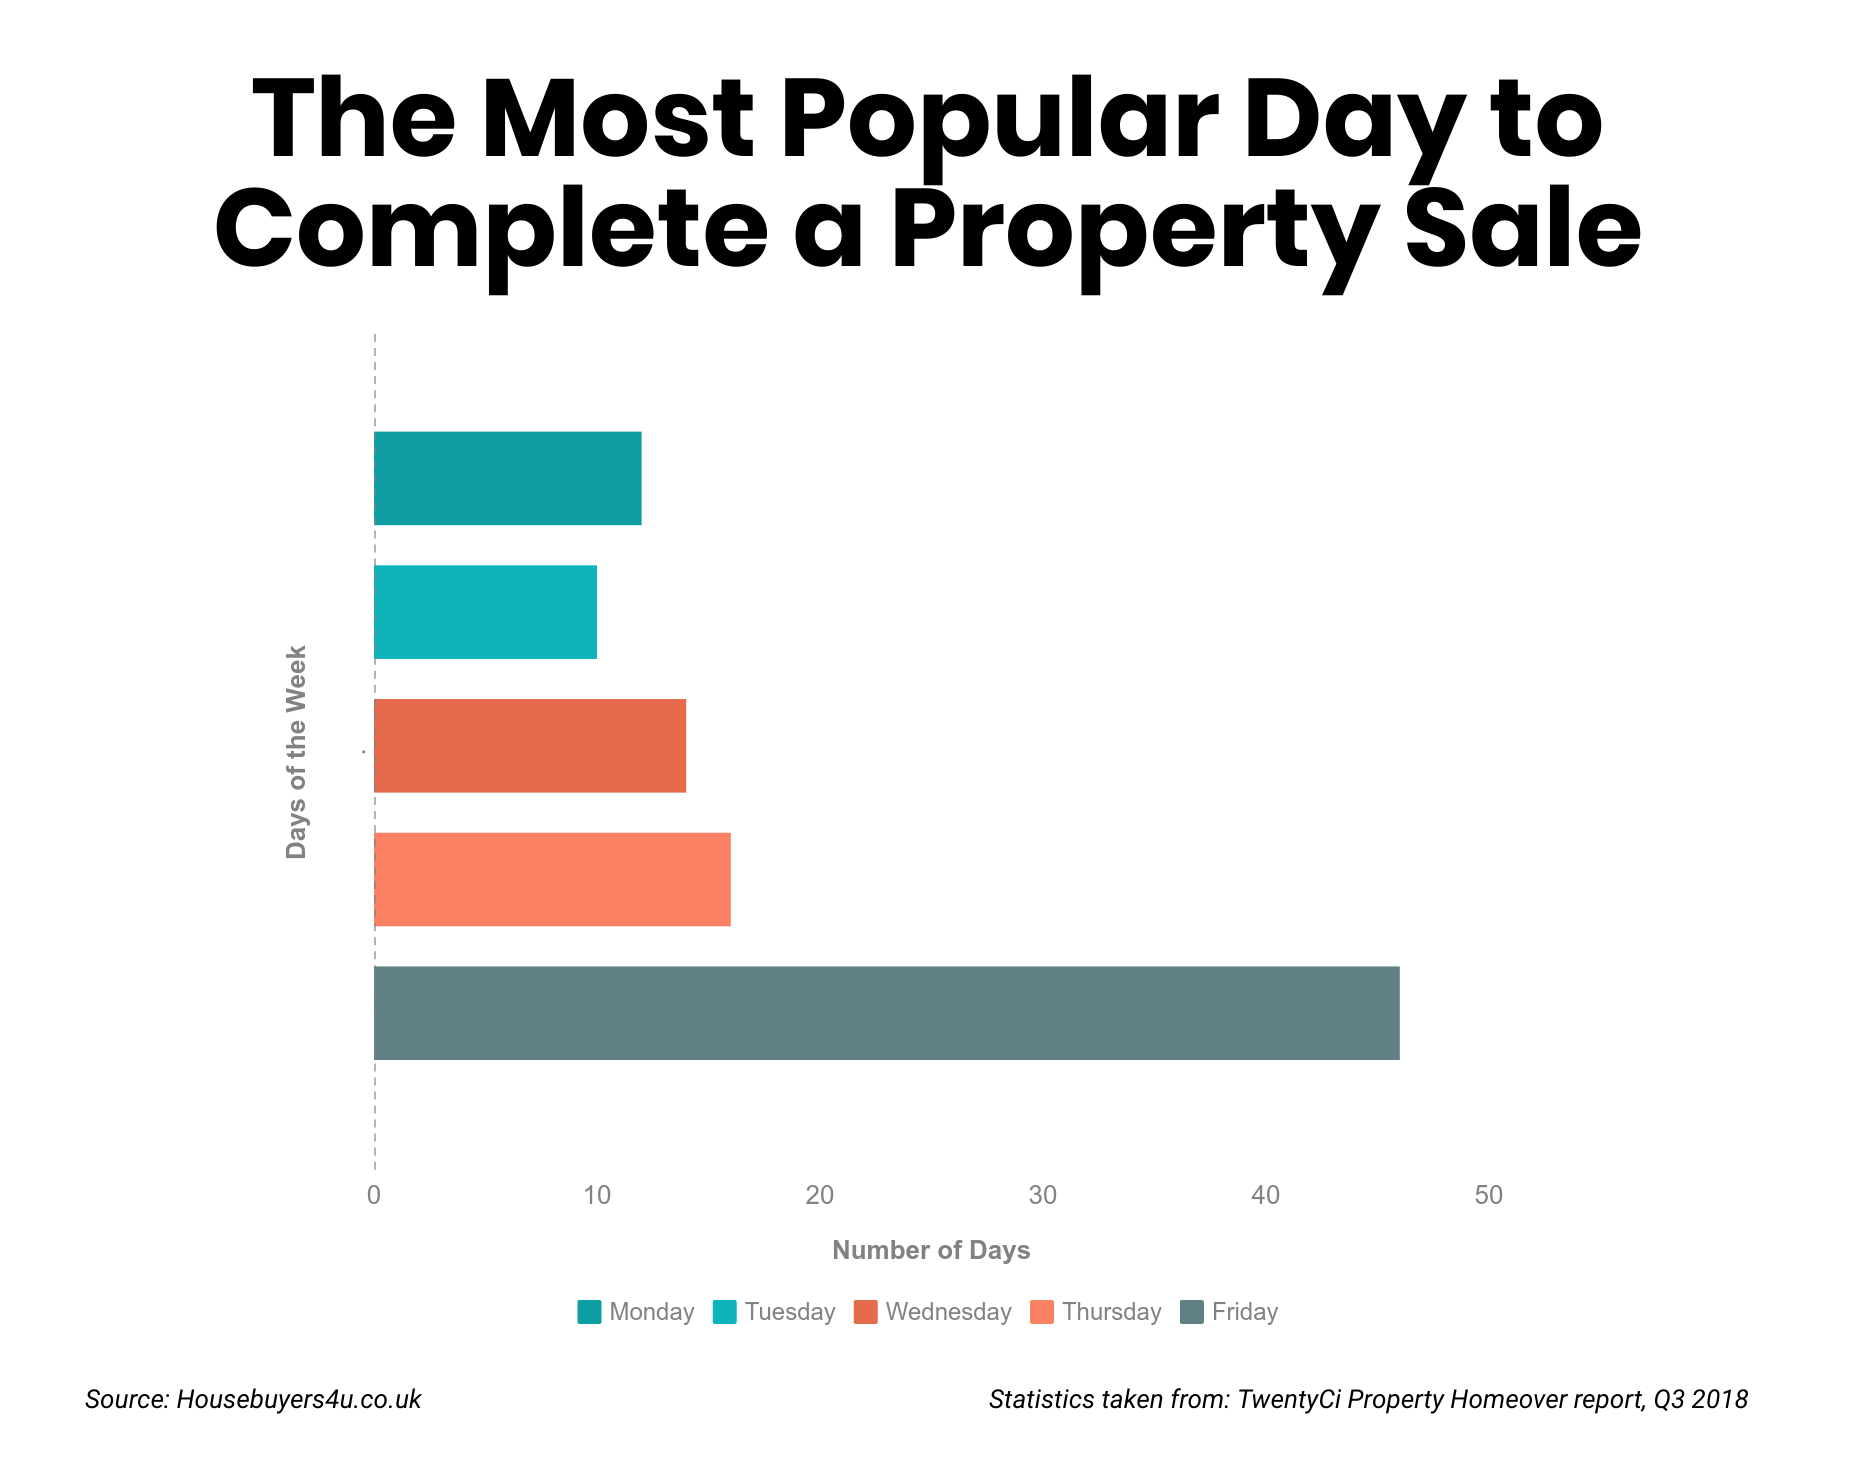 A bar chart of the most popular day to complete a property sale